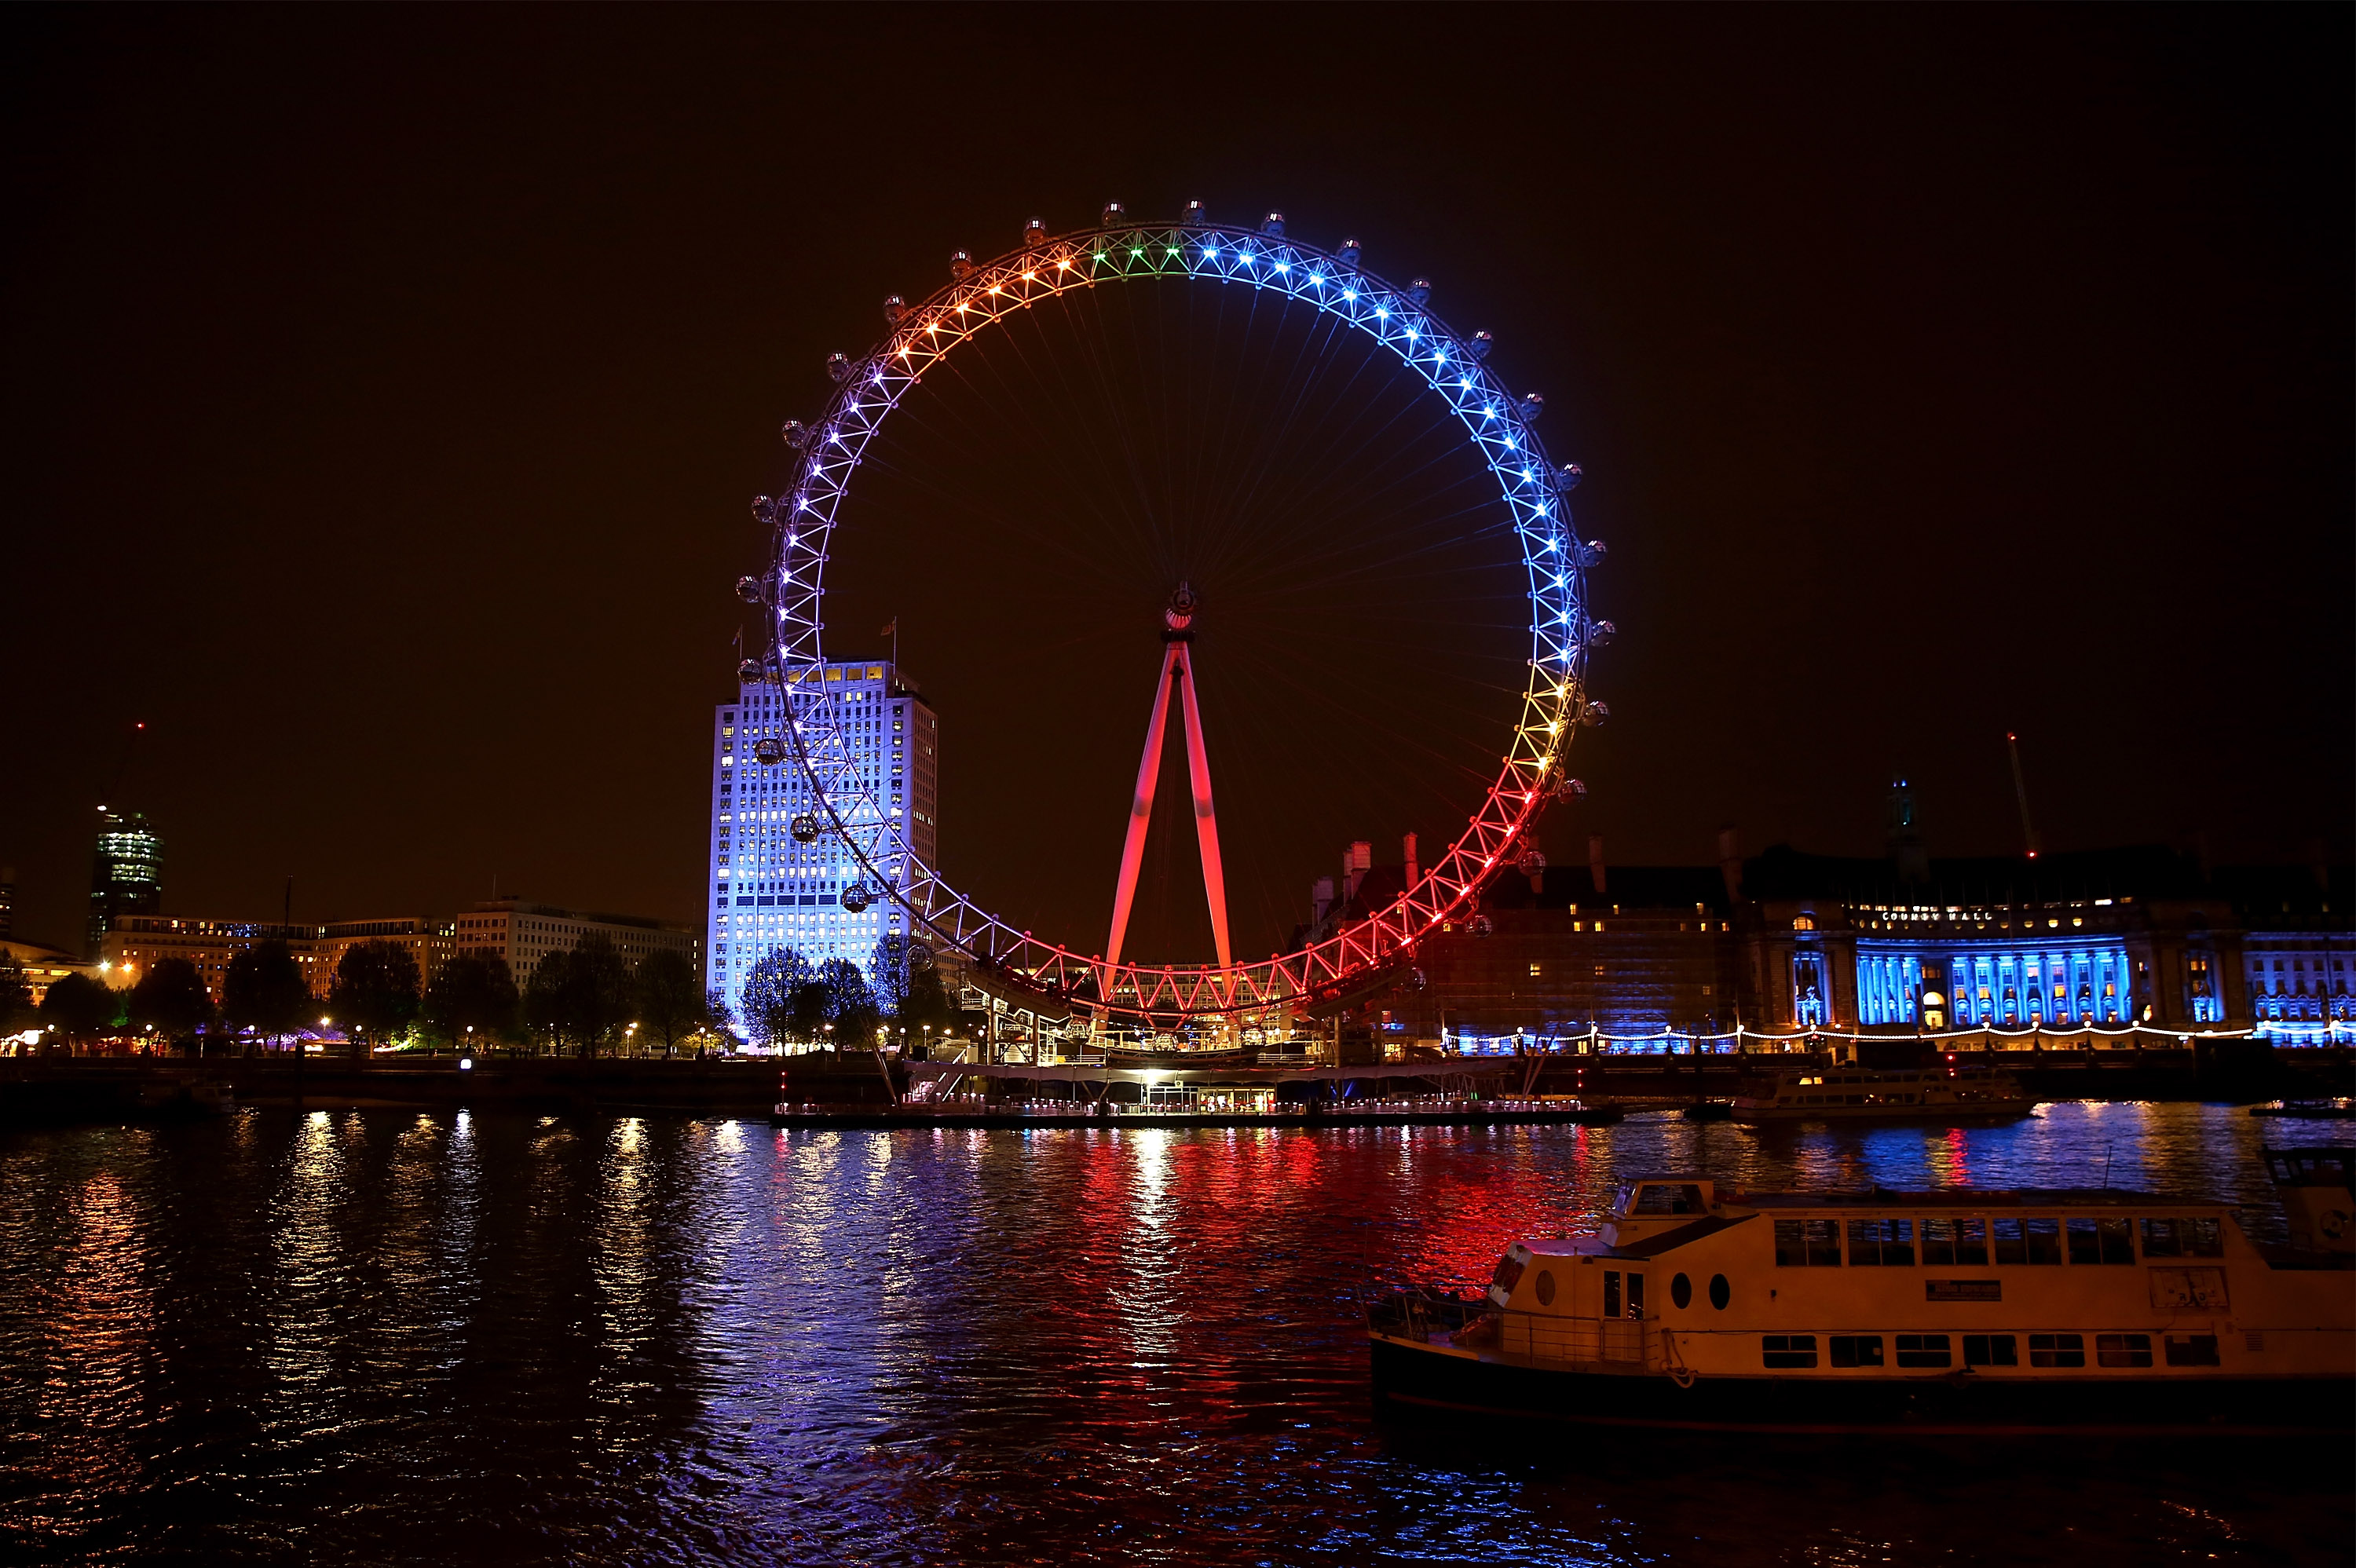 Facebook Lights Up The London Eye With The Nation's General Election Conversations